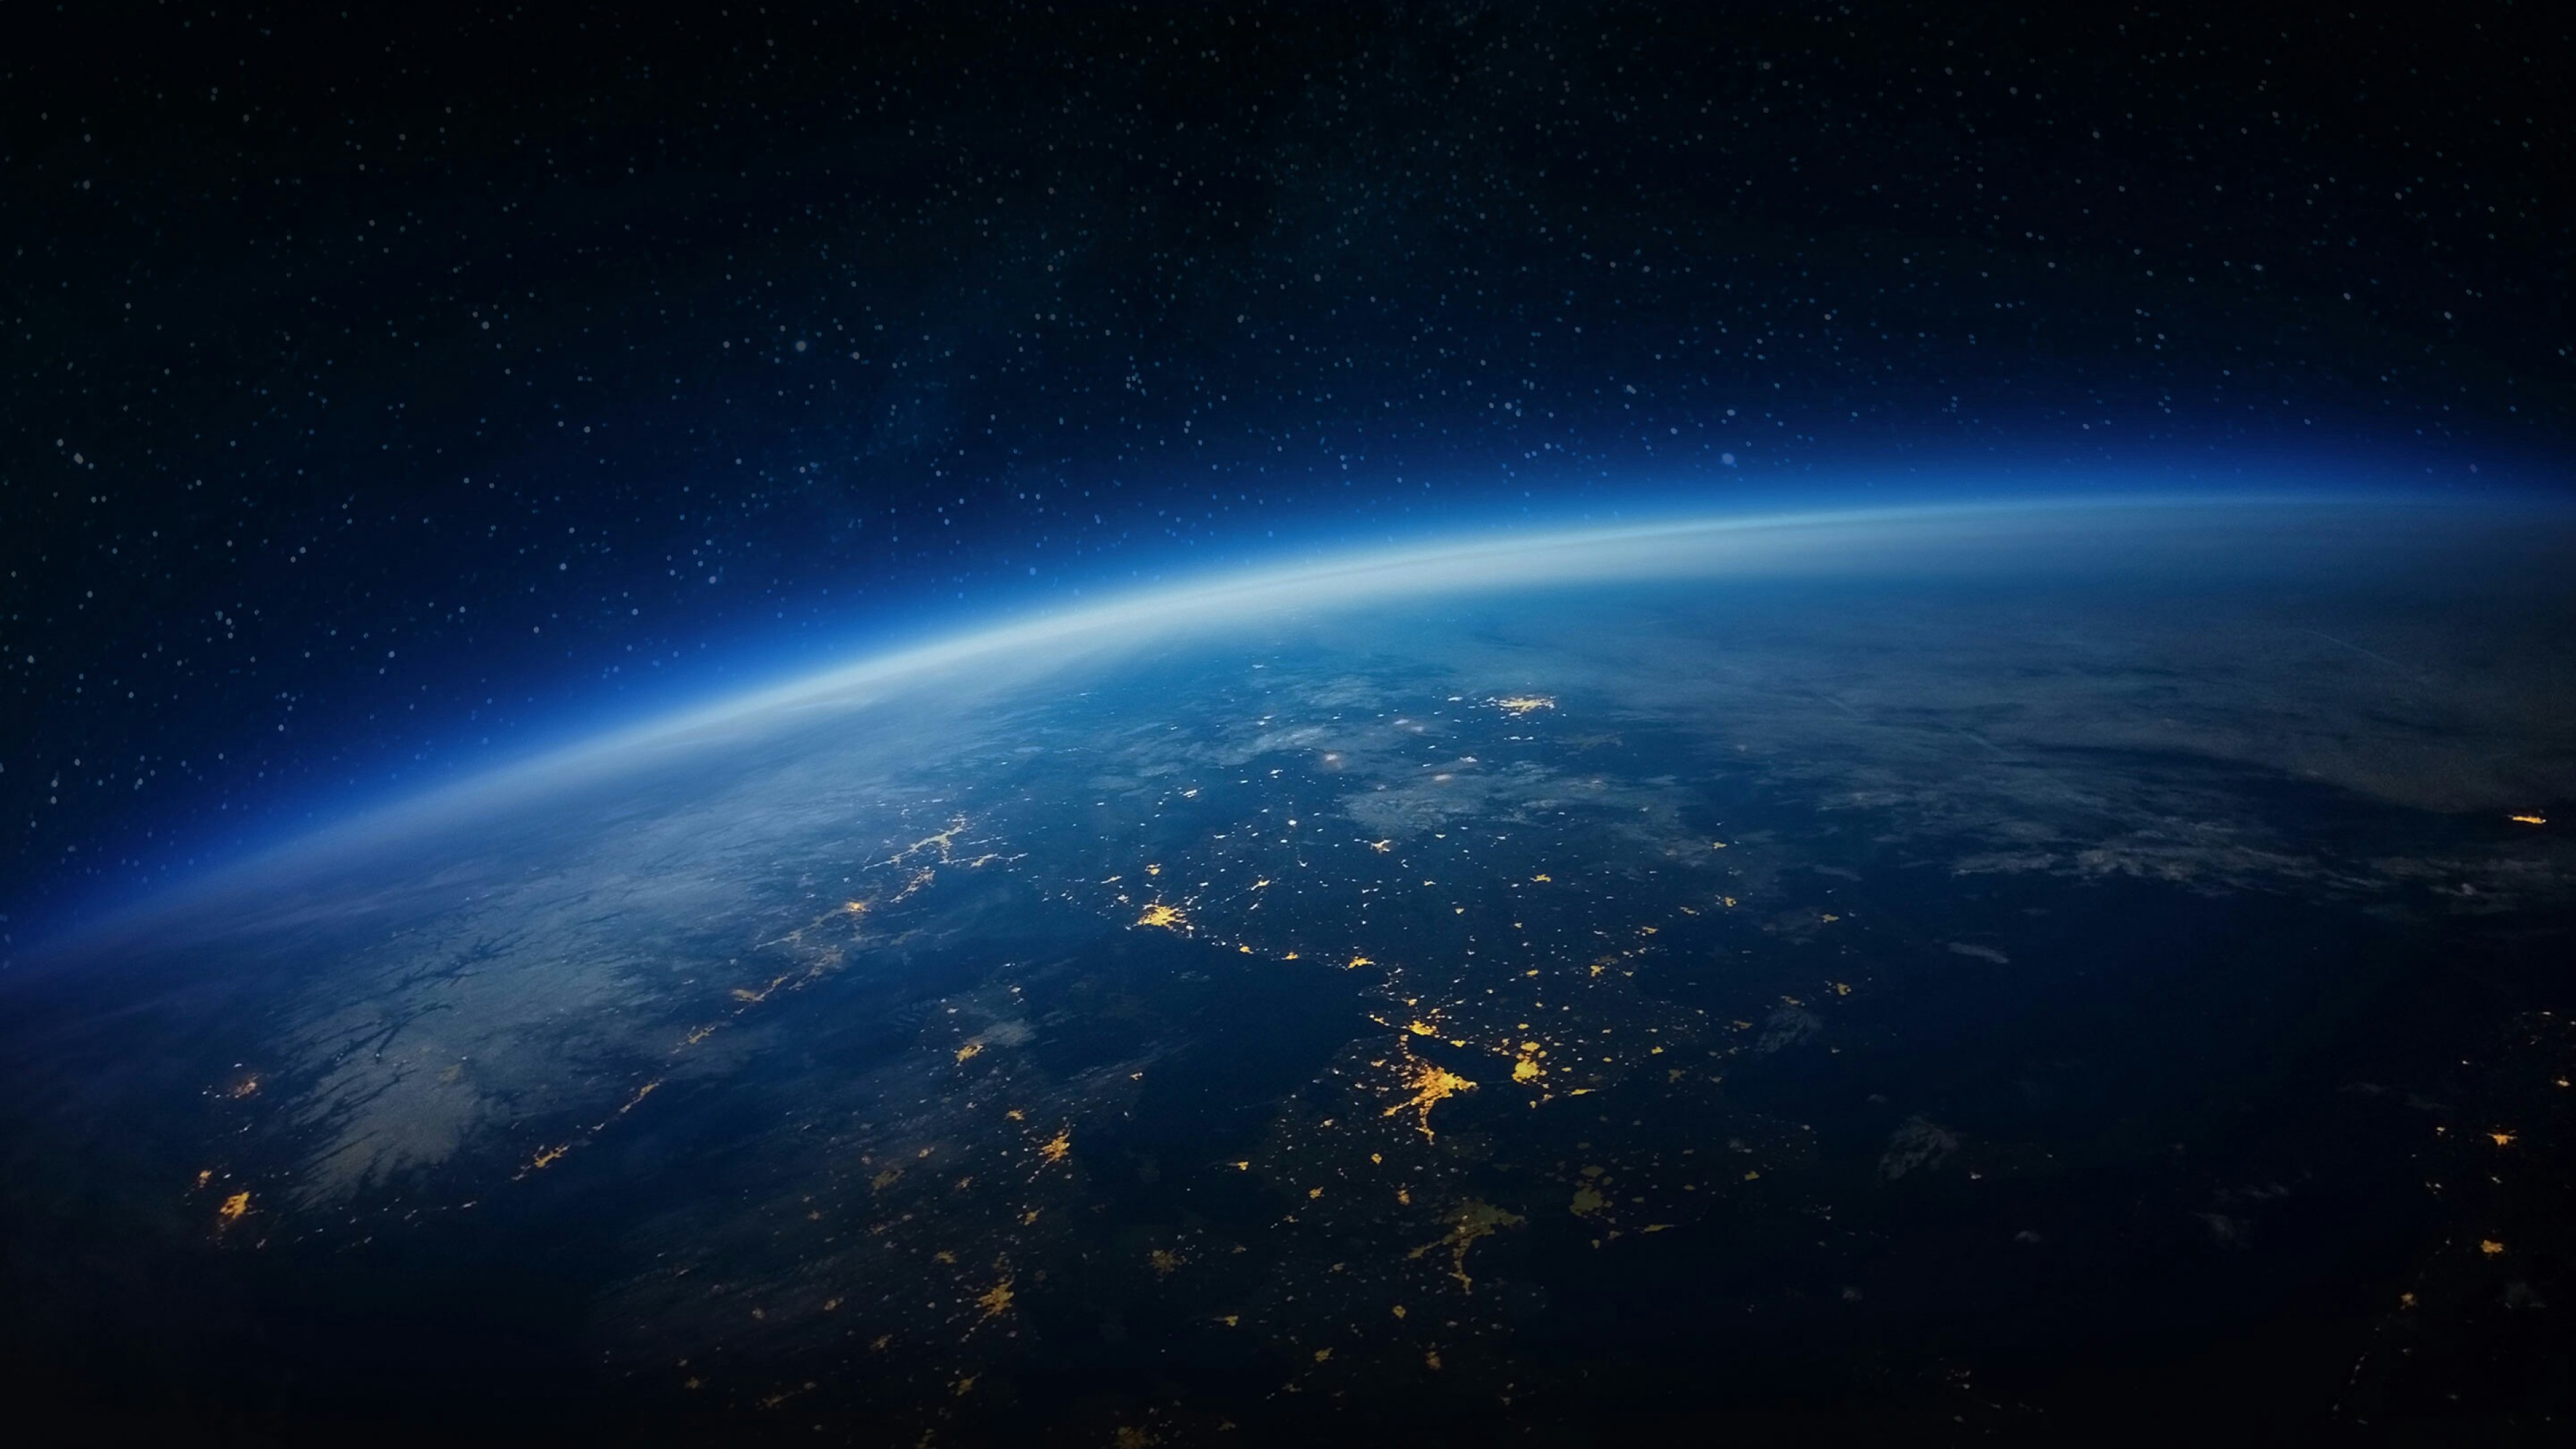 Universe, Earth, Night, Cosmos, Space Hd Wallpaper, - Outer Space , HD Wallpaper & Backgrounds